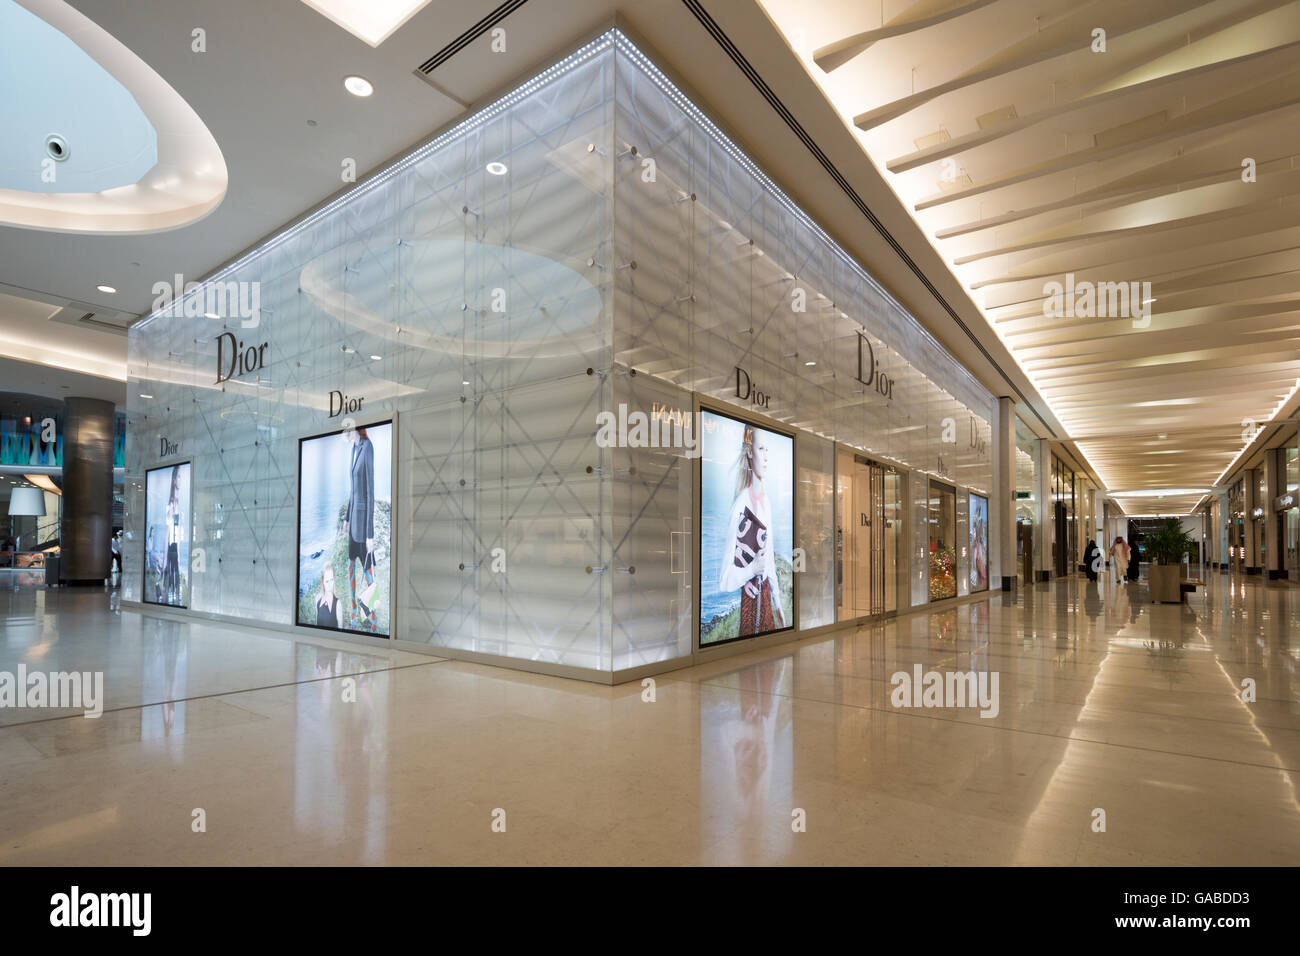 Dior shop moda mall bahrain world trade center manama for United international decor bahrain